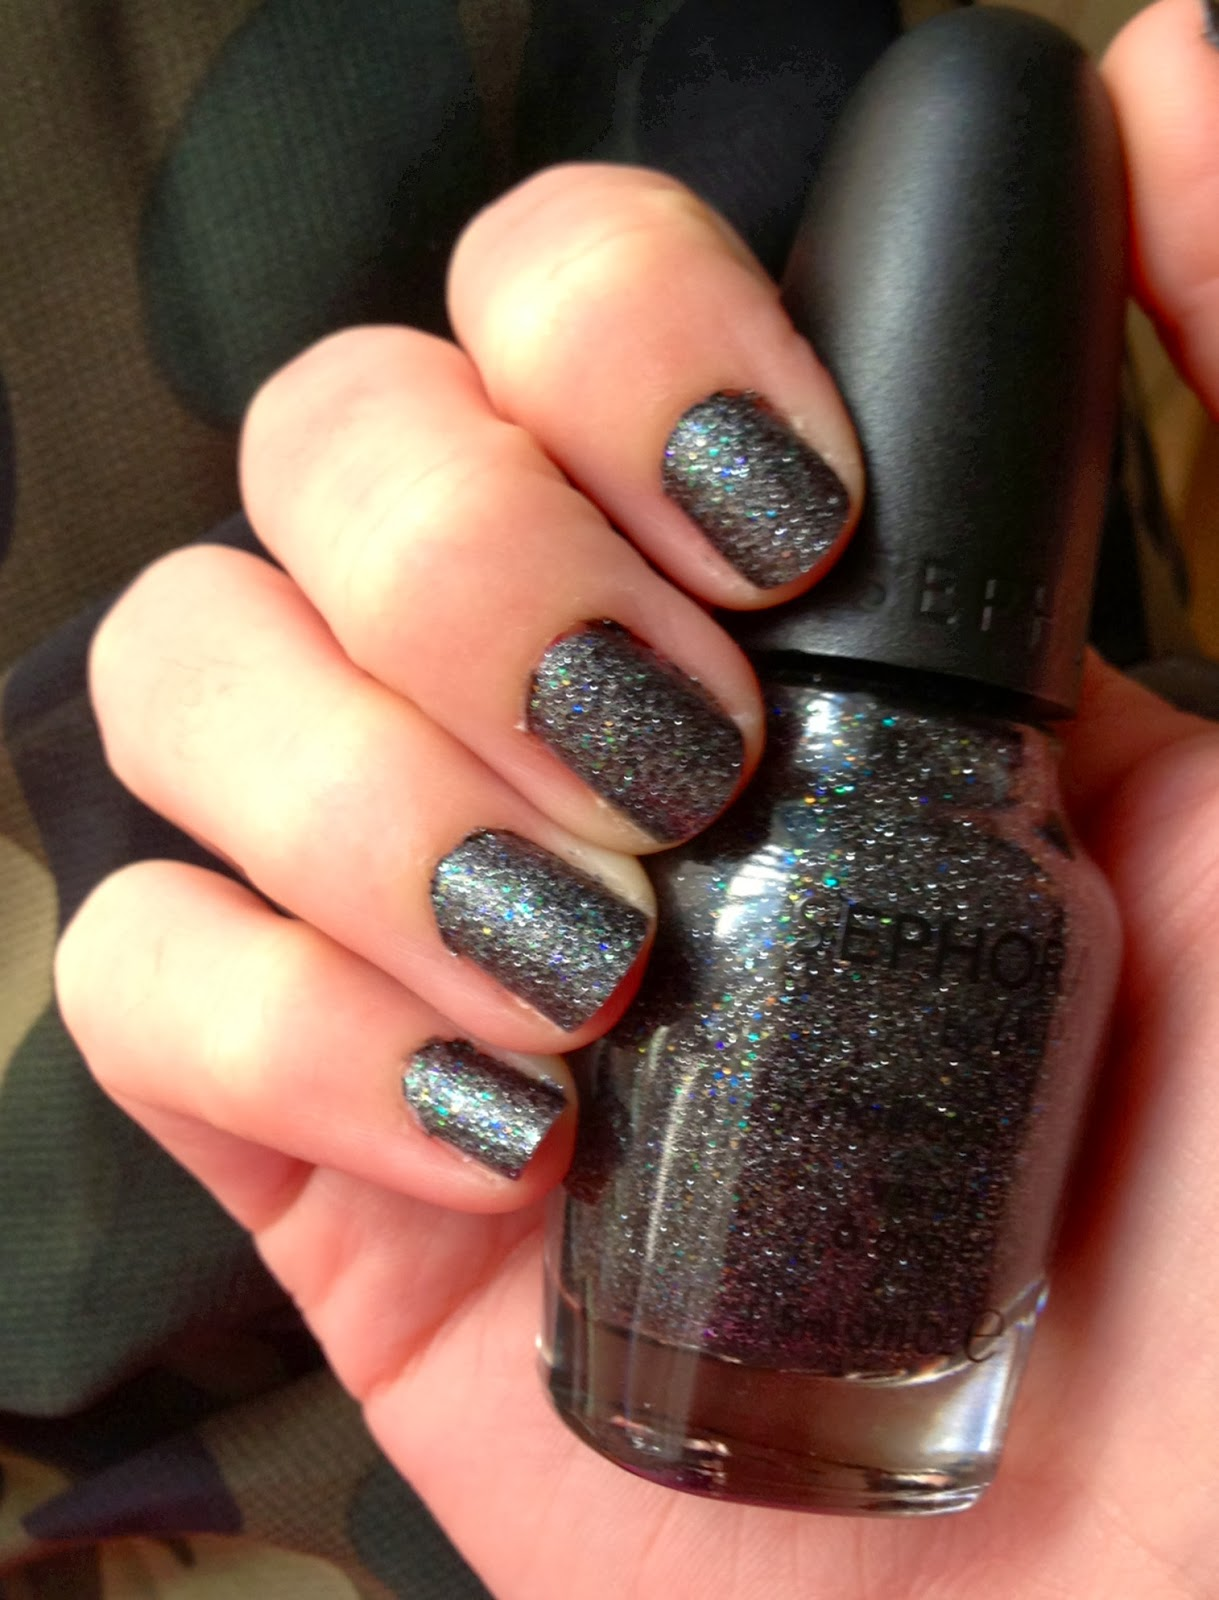 All Things Girly: Textured Nail Polish: Sephora by O.P.I Swatch